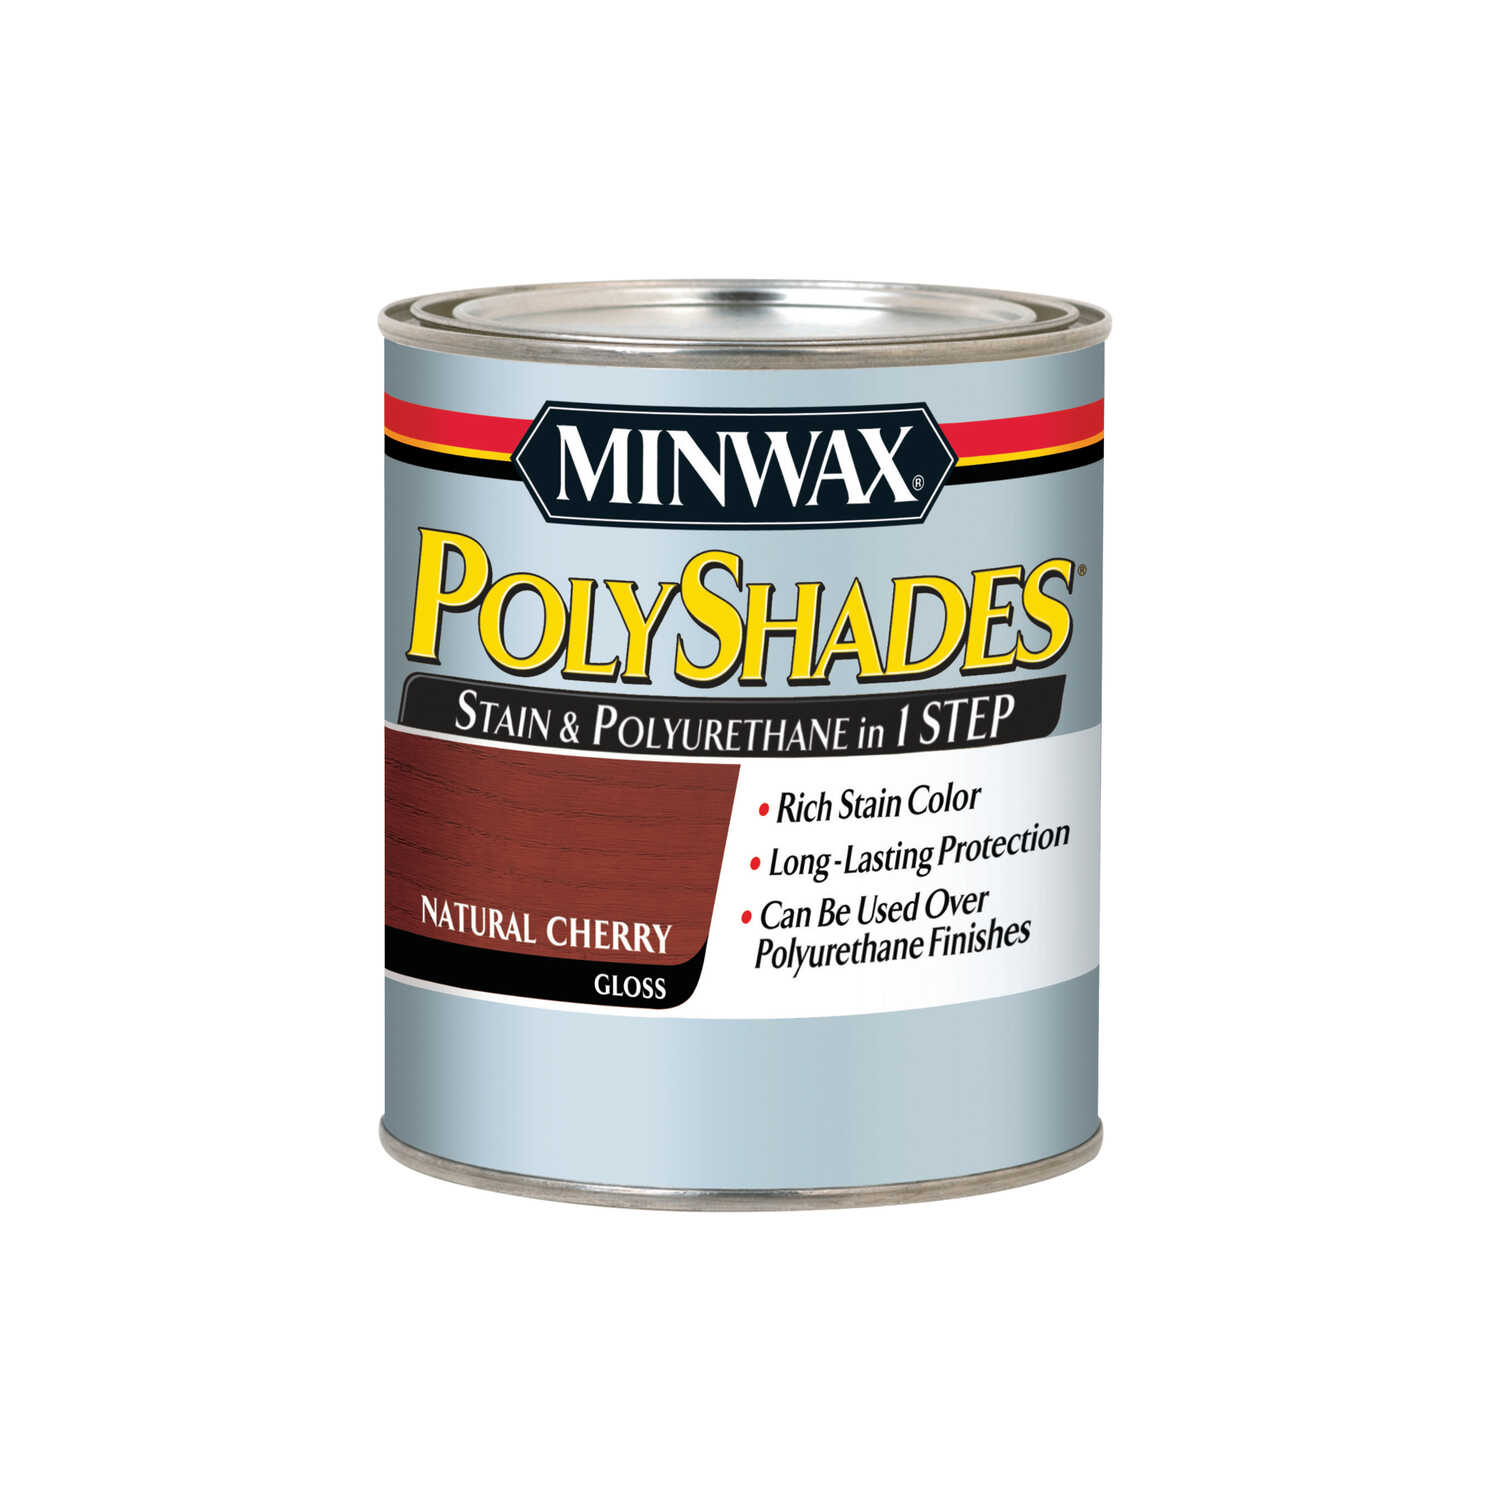 Minwax  PolyShades  Semi-Transparent  Gloss  Natural Cherry  Oil-Based  Stain  1 qt.